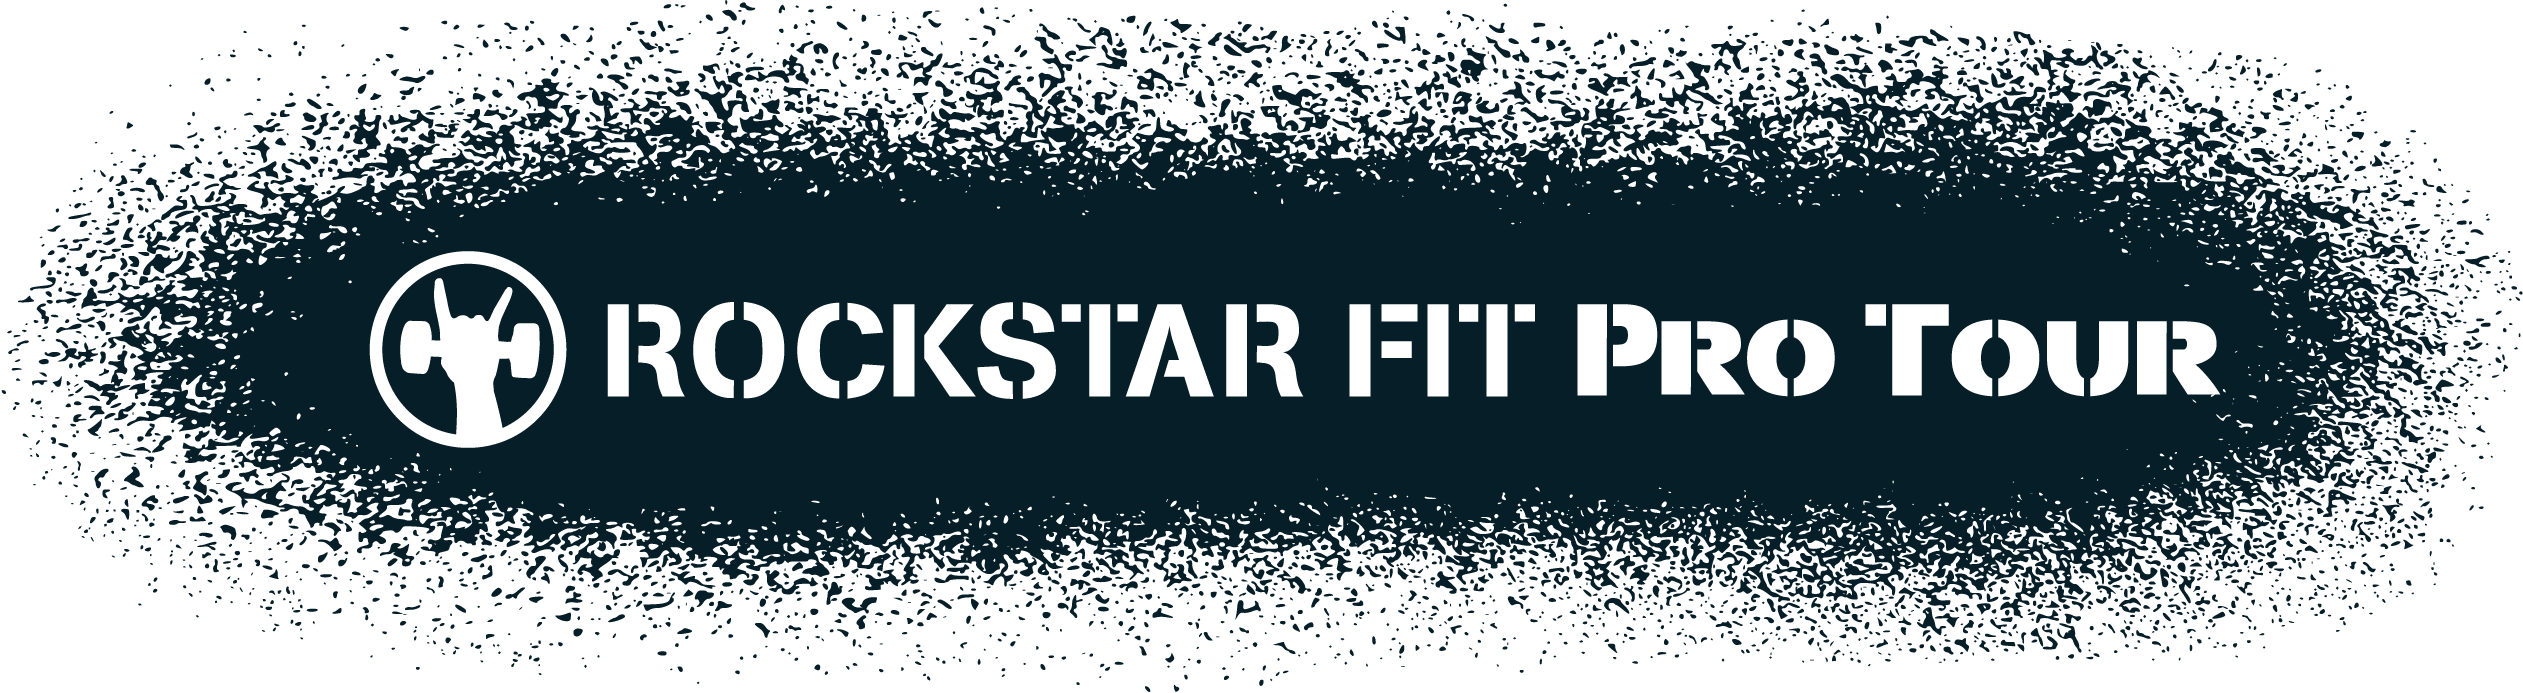 Rock Star Fit Pro Tour